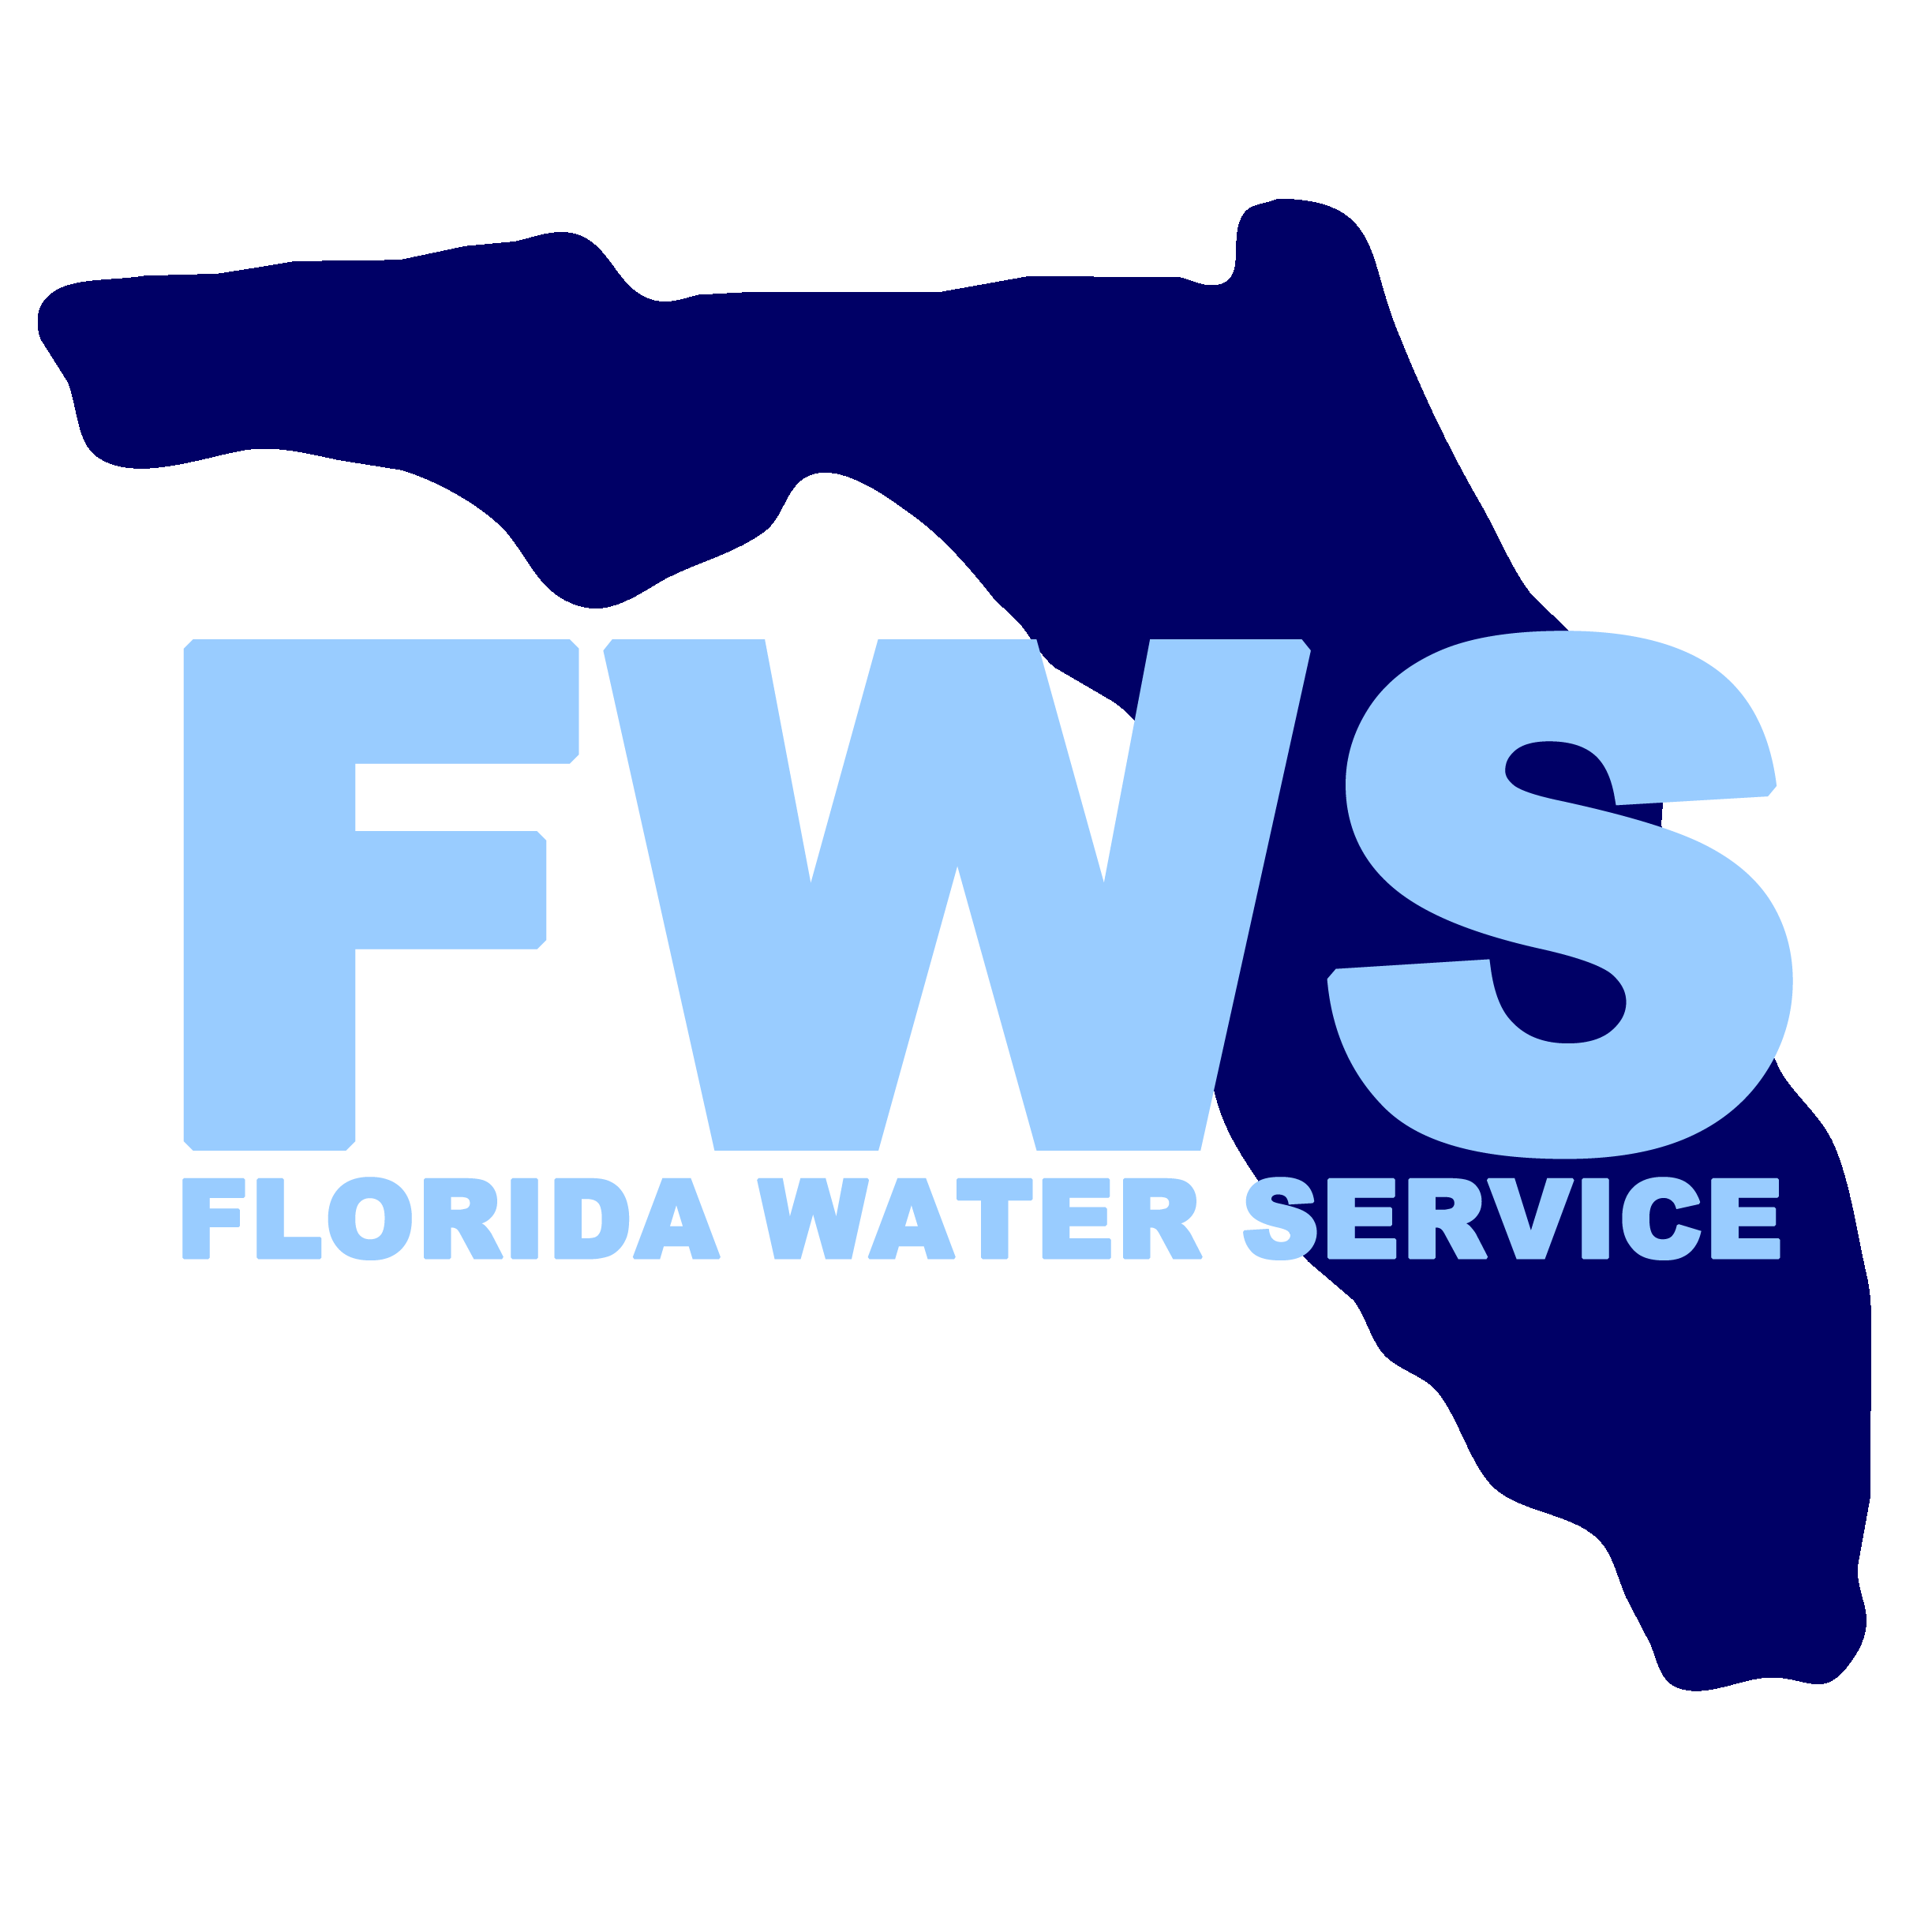 FWS_OFFICIAL_LOGO.png